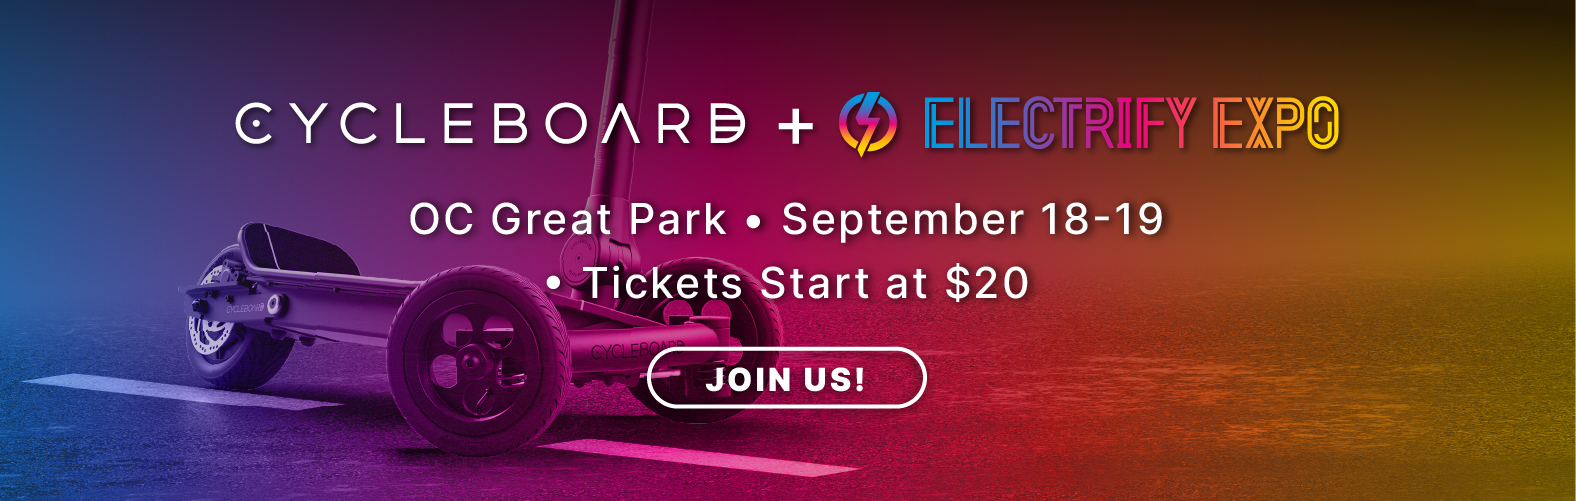 Come experience North America's Largest E-mobility Festival Electrify Expo. Come check out the newest and biggest names in E-Mobility!